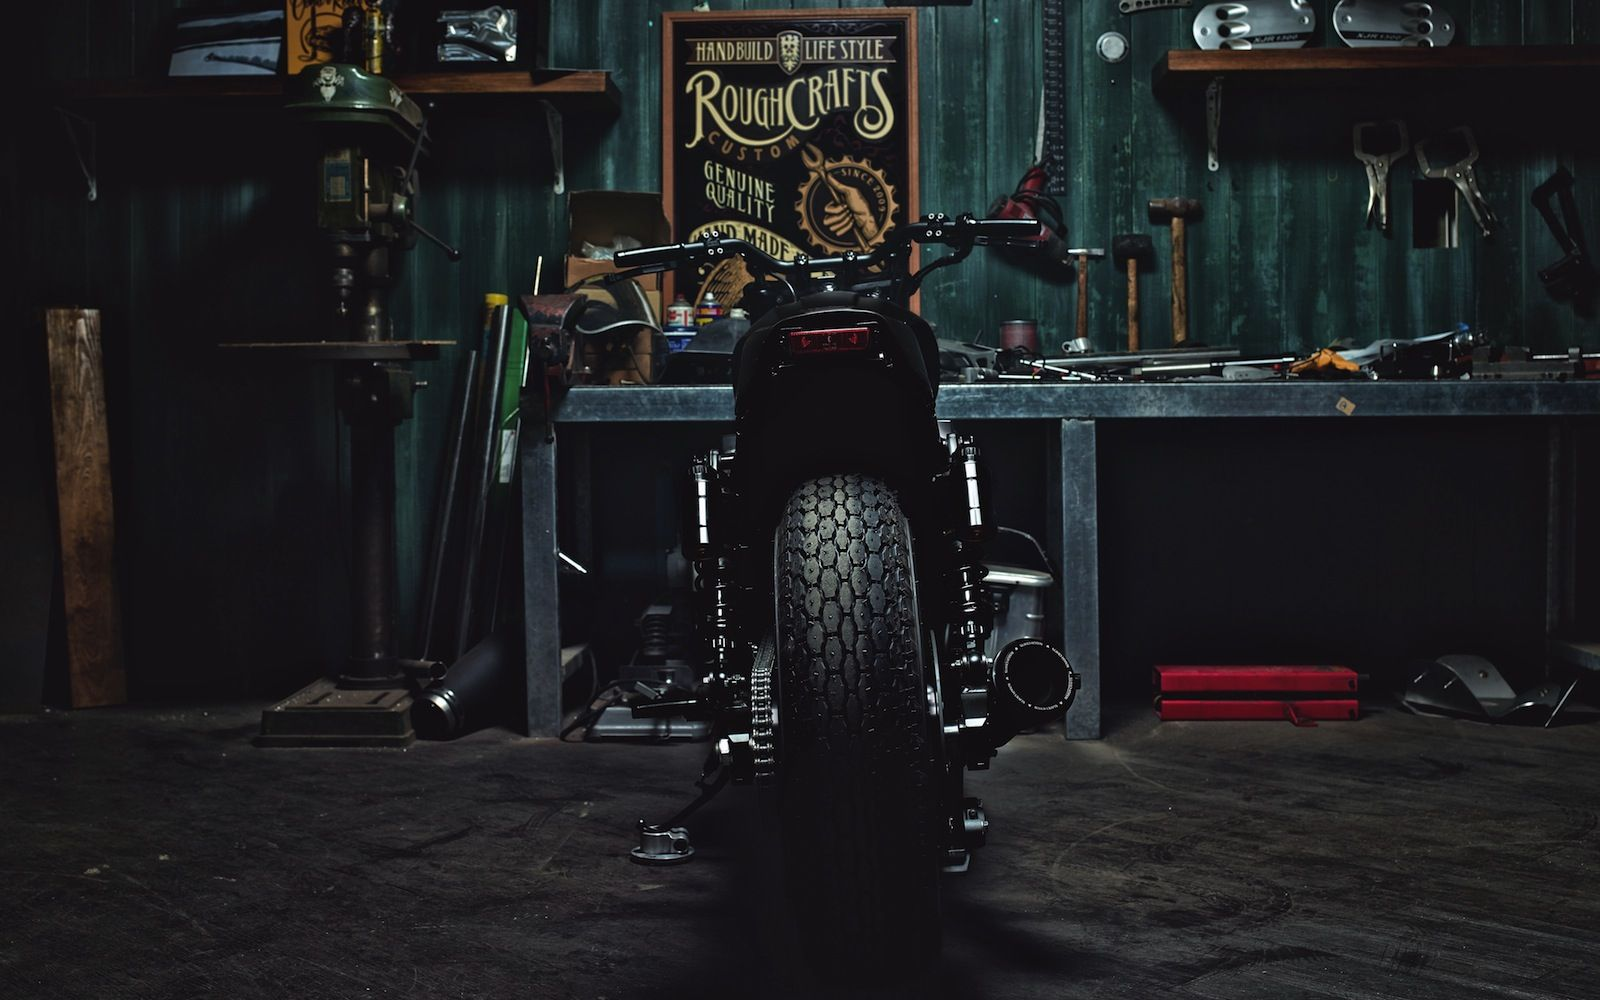 Winston Yeh's XJR1300 'Guerilla Four' by Rough Craft